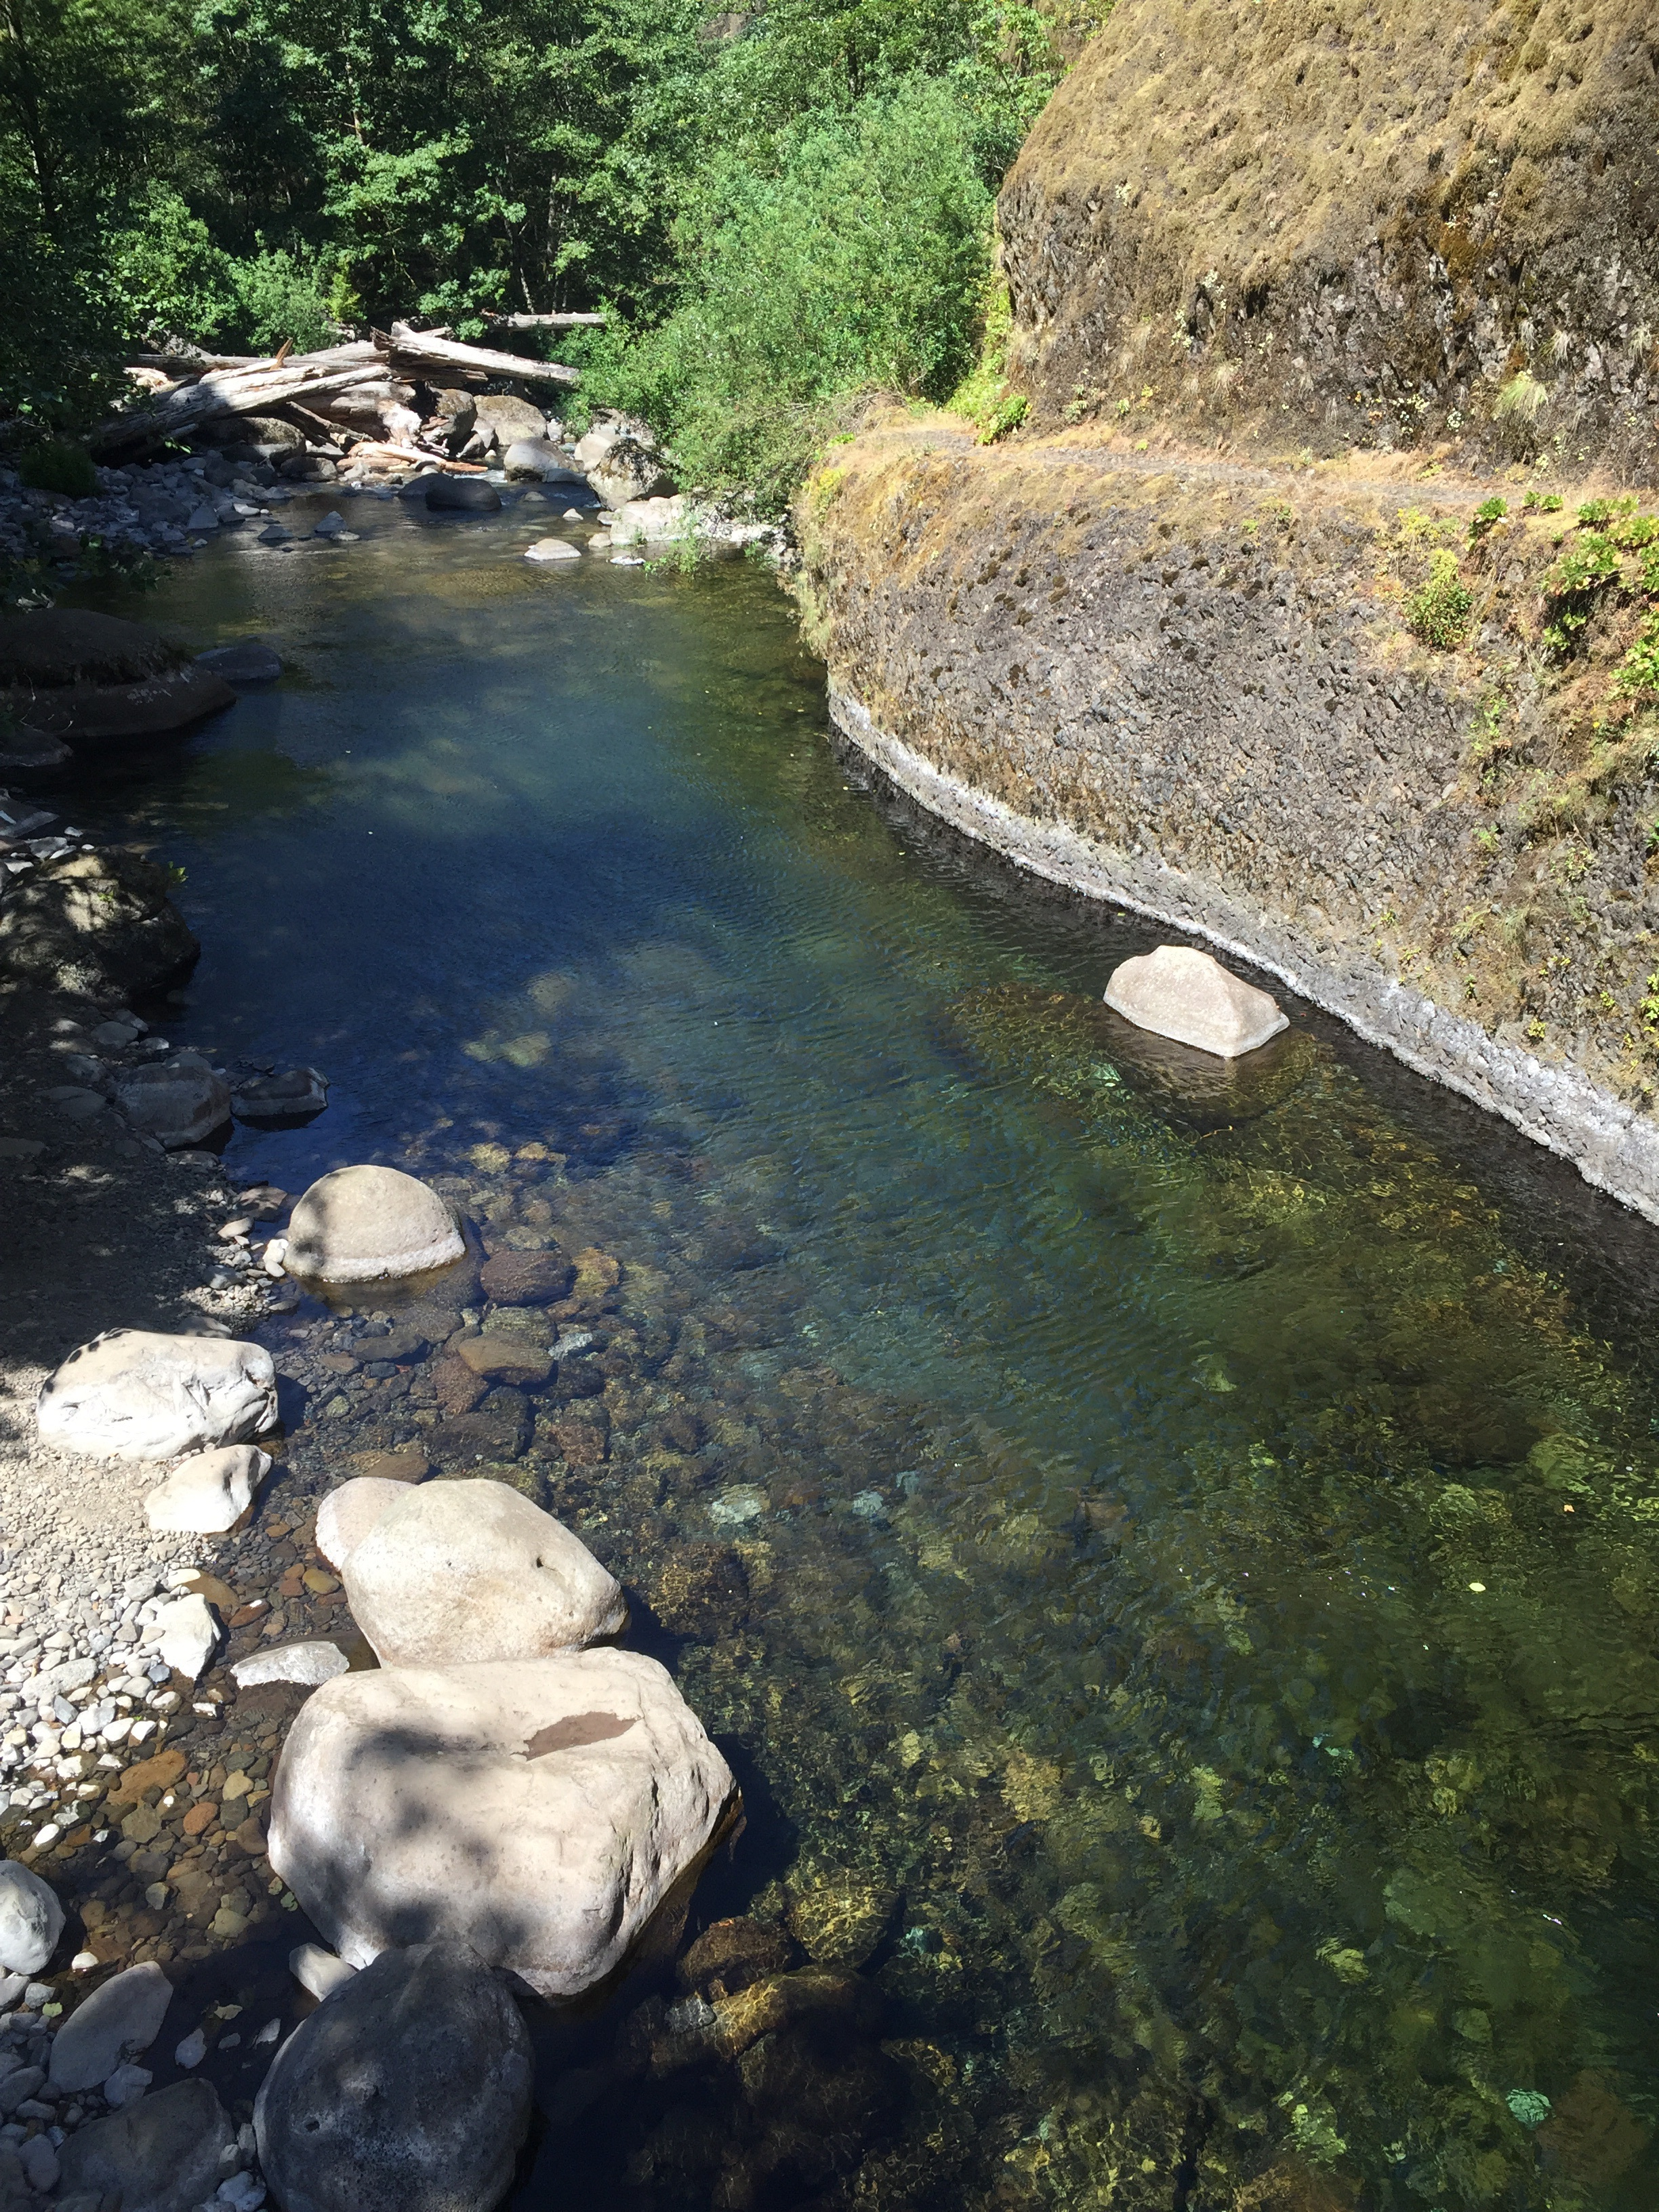 The trail and a clear, calm pool near 4-mile bridge